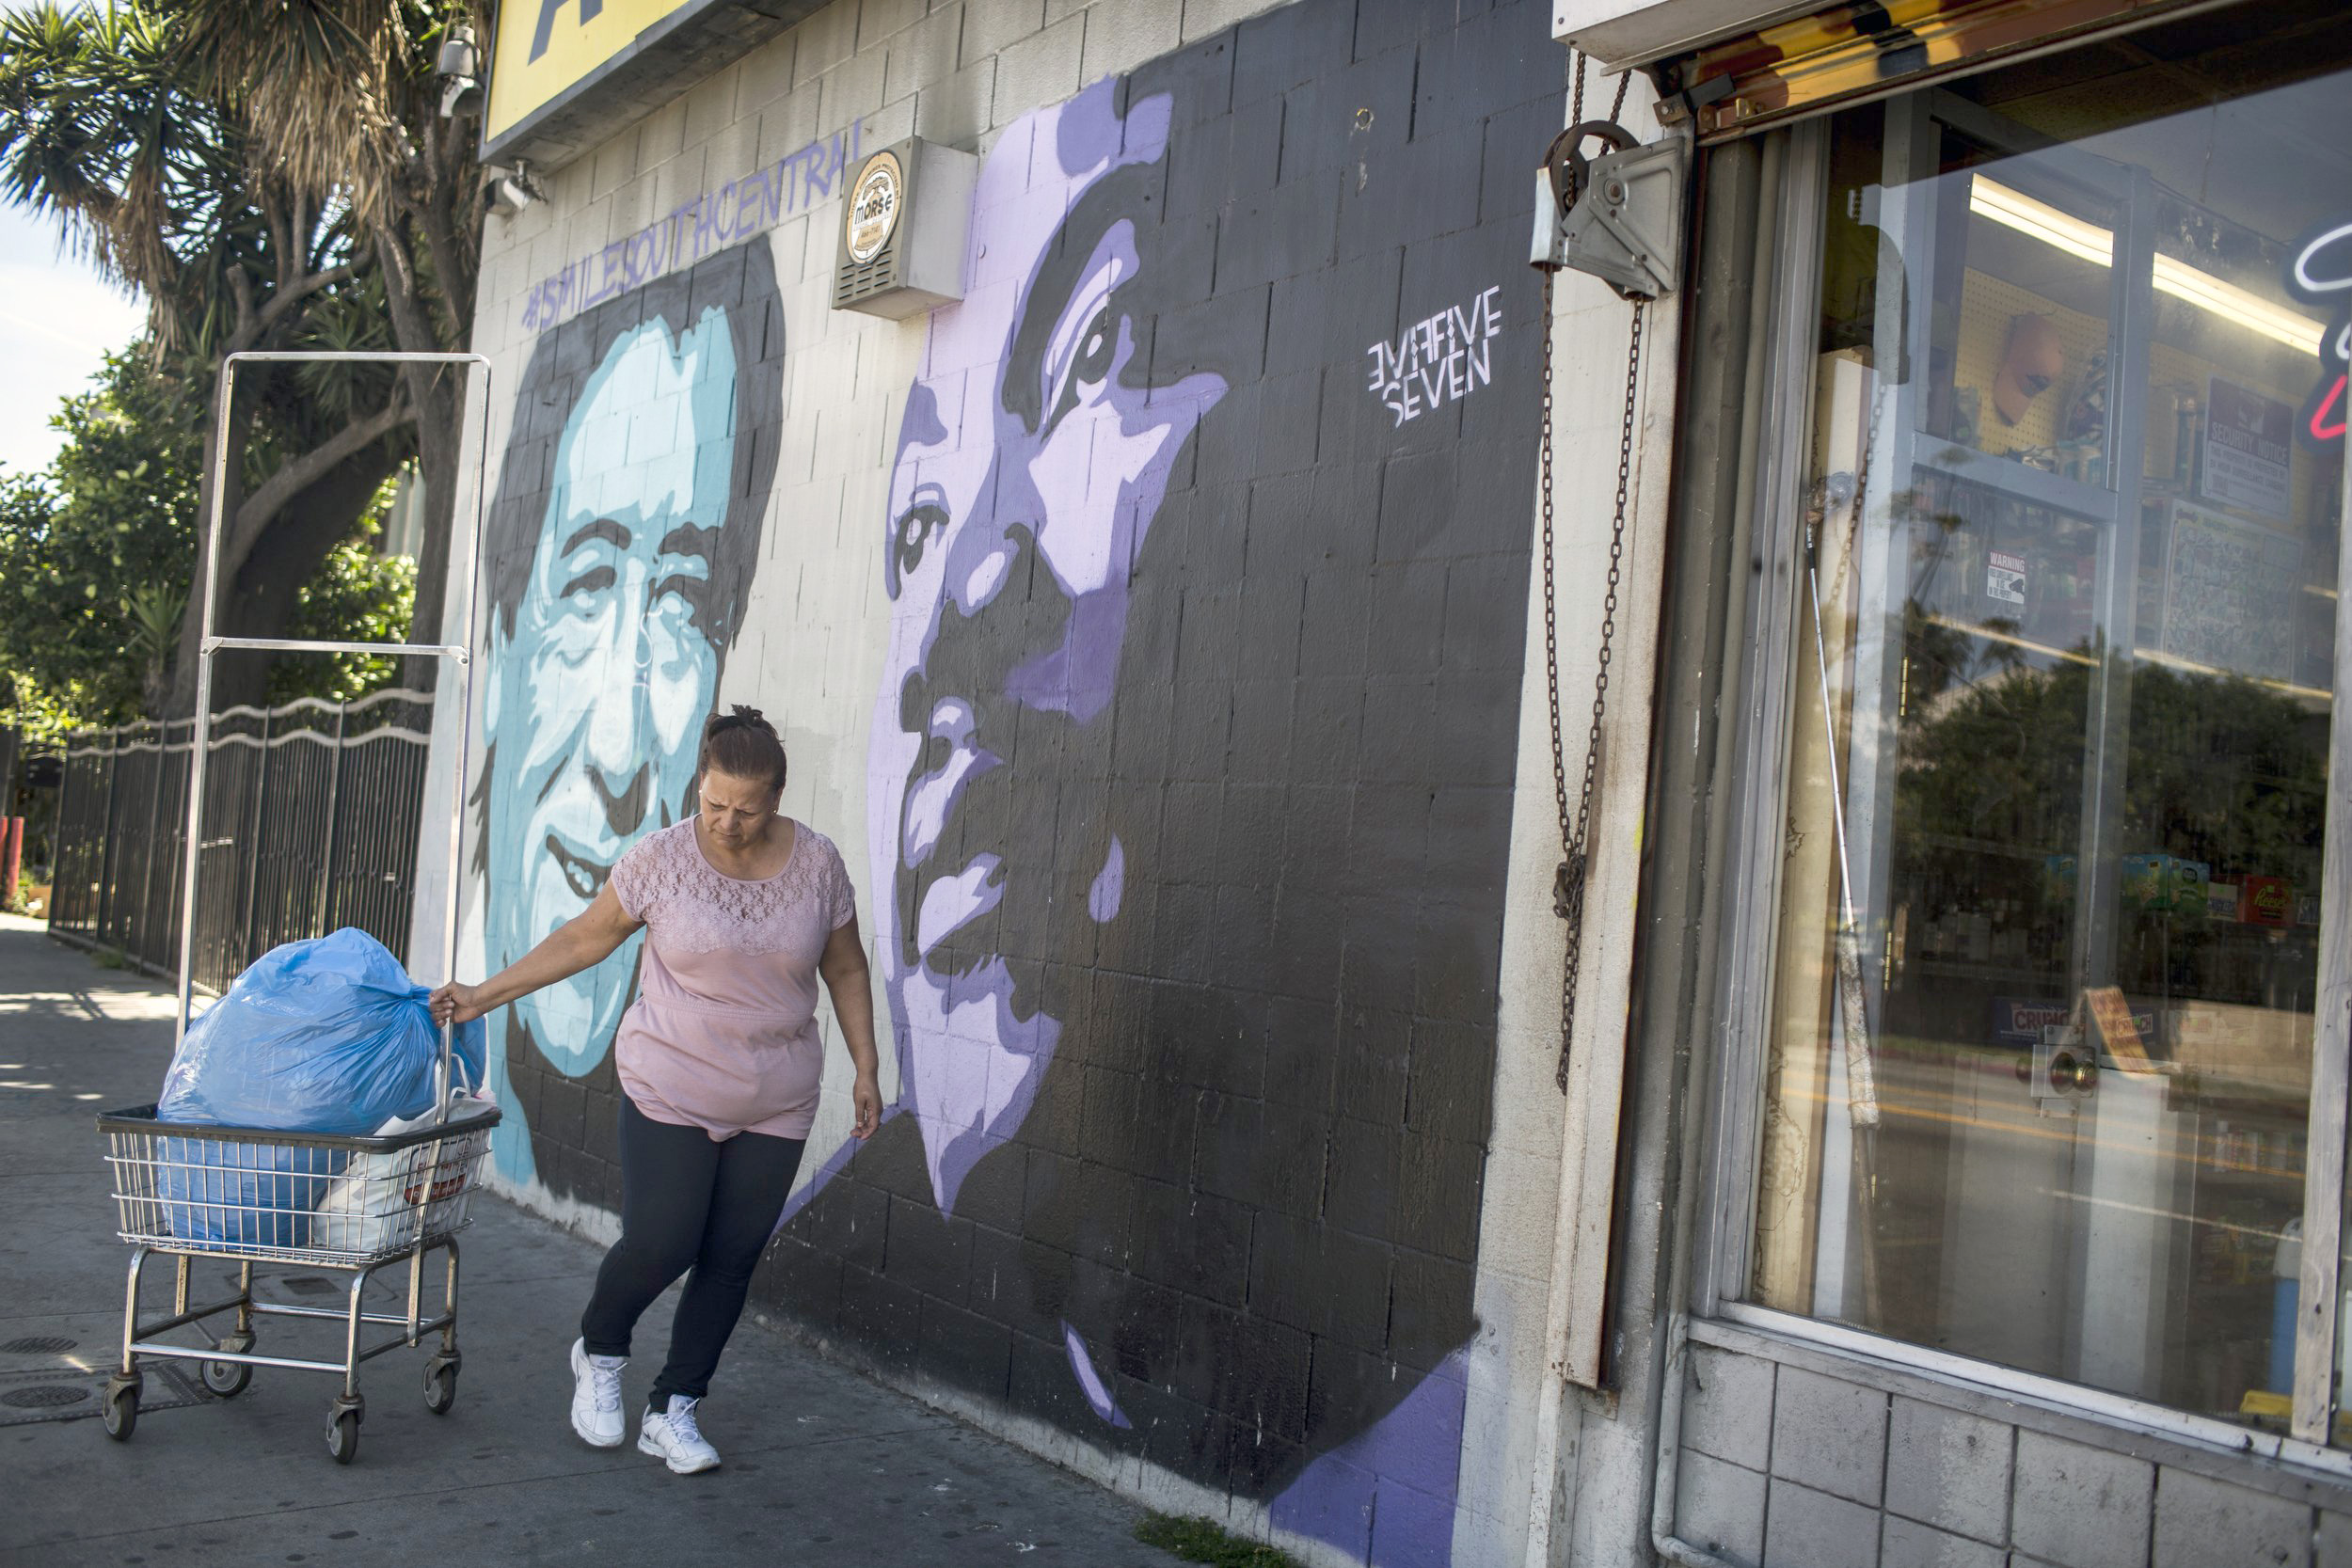 25 Years Since Riots, Ghosts of Old L.A. Linger